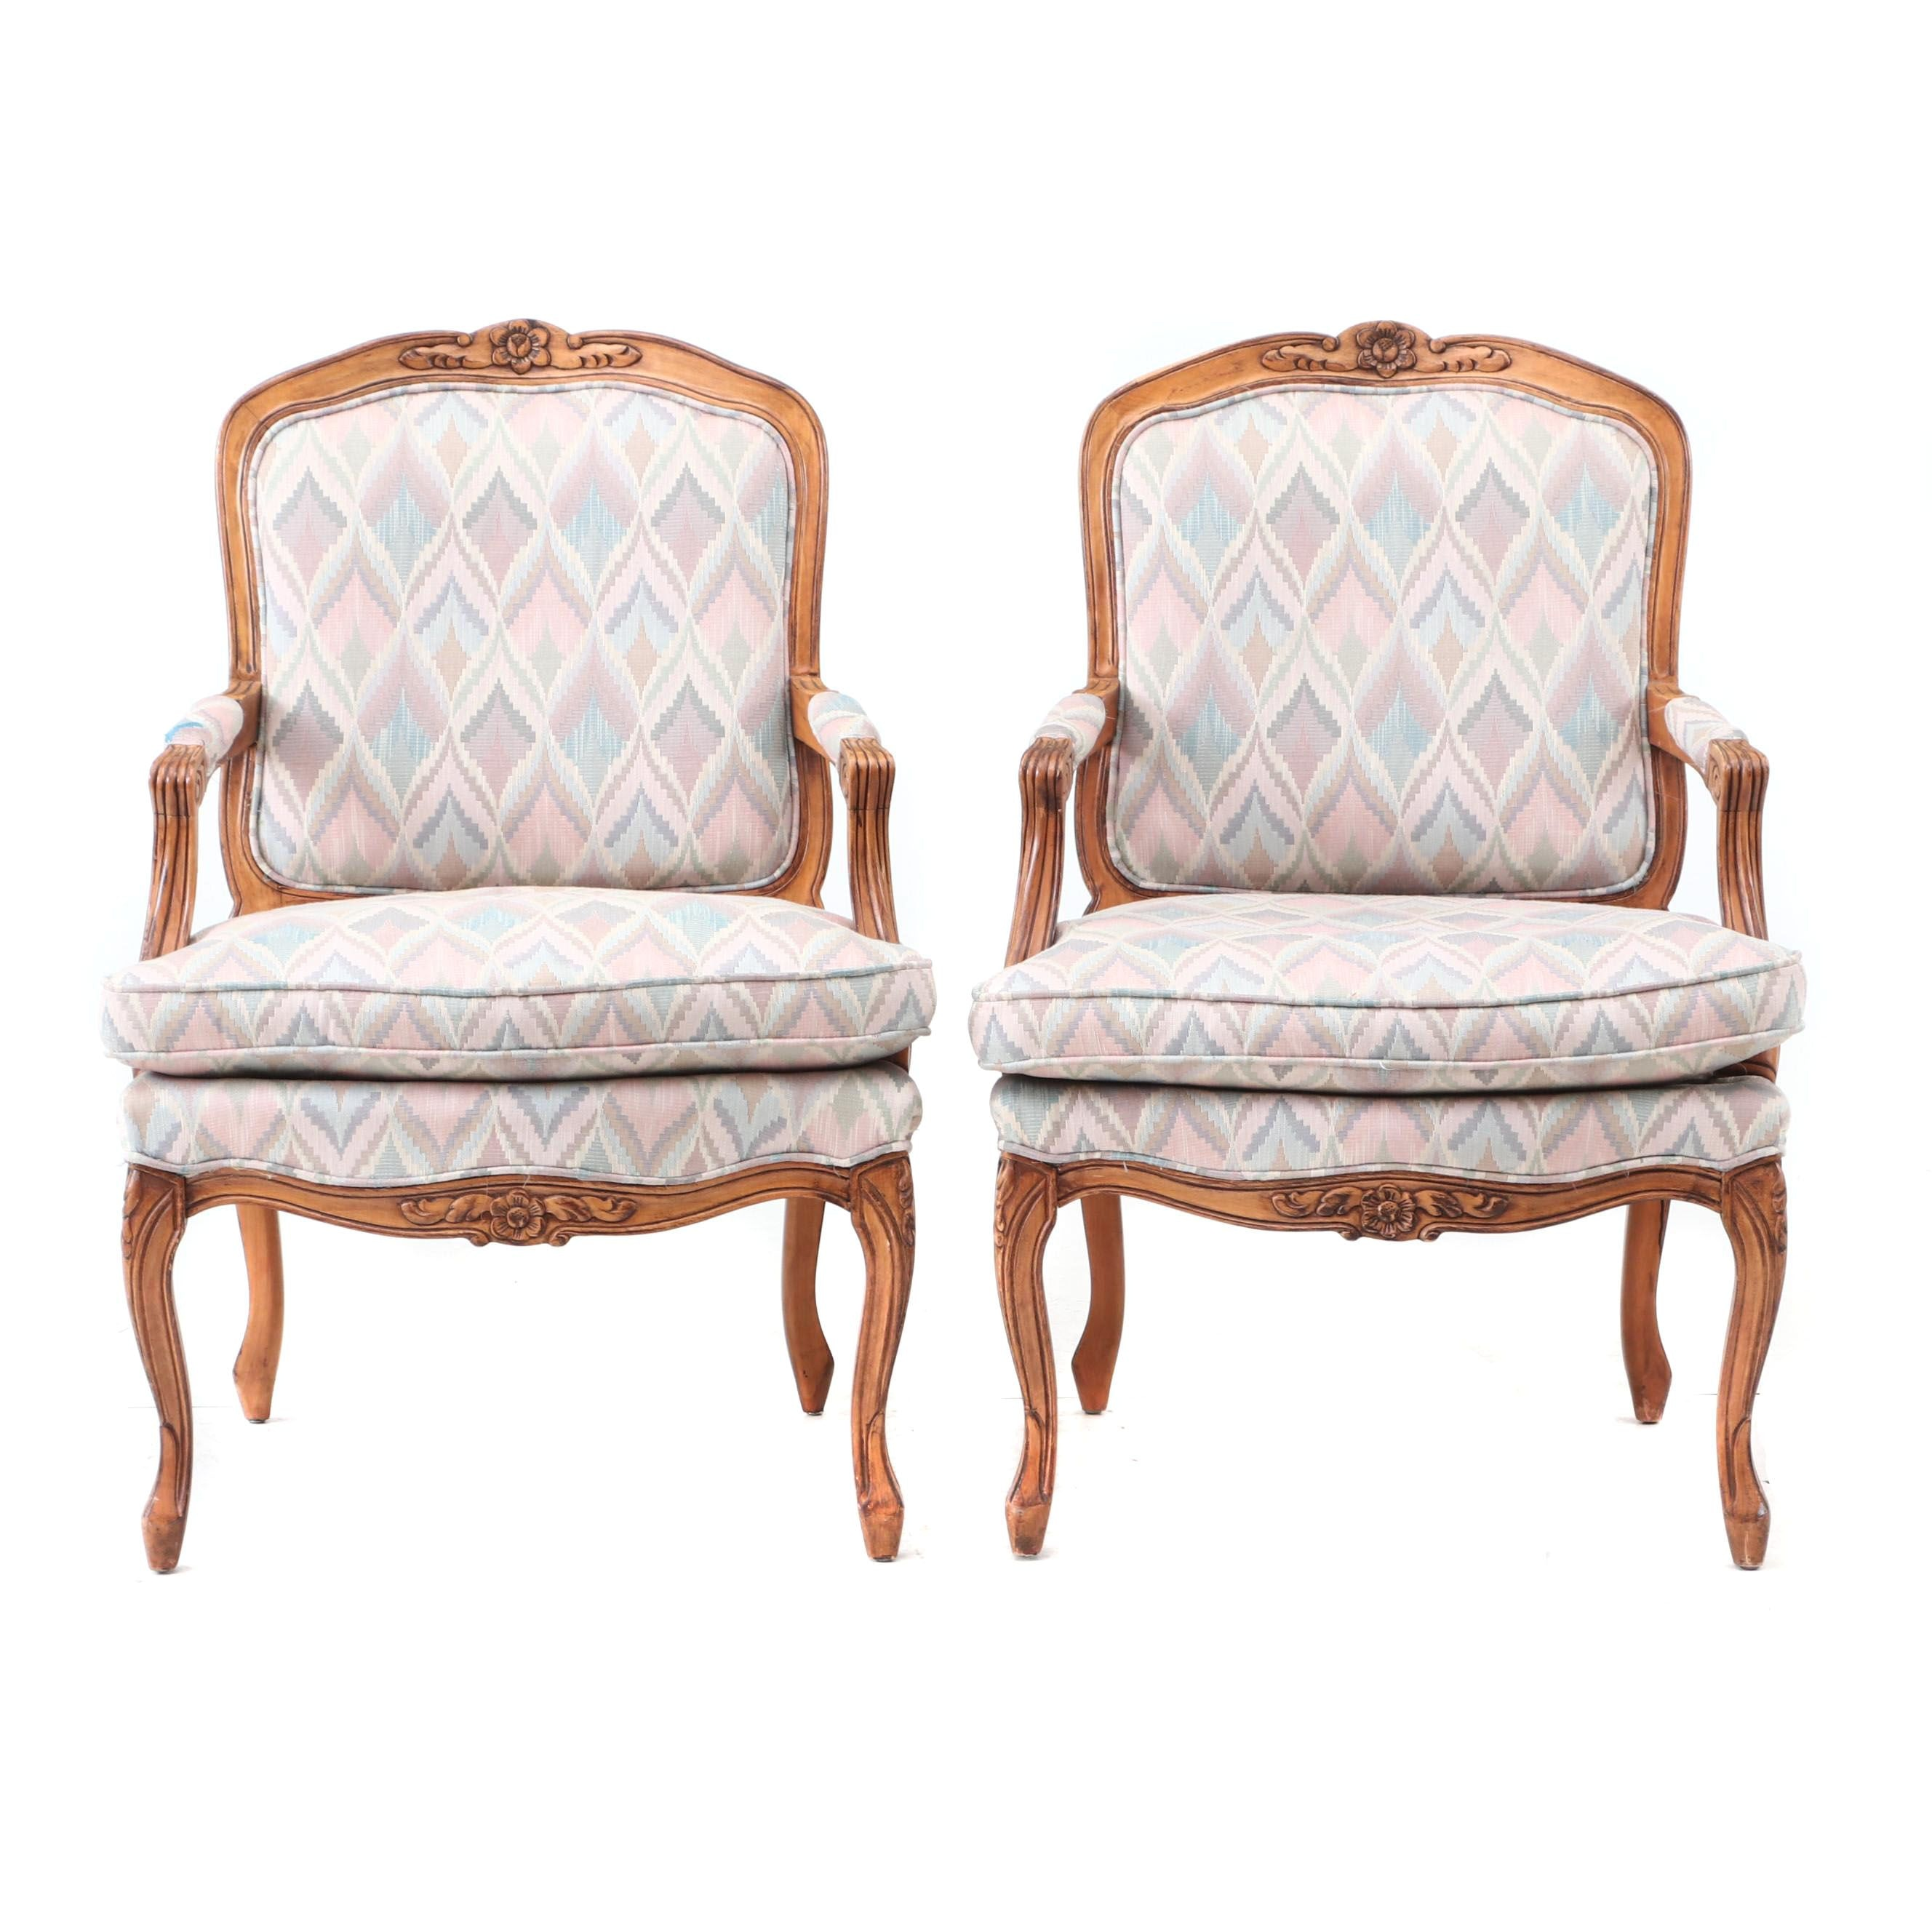 Louis XV Style Upholstered Arm Chairs in Birch